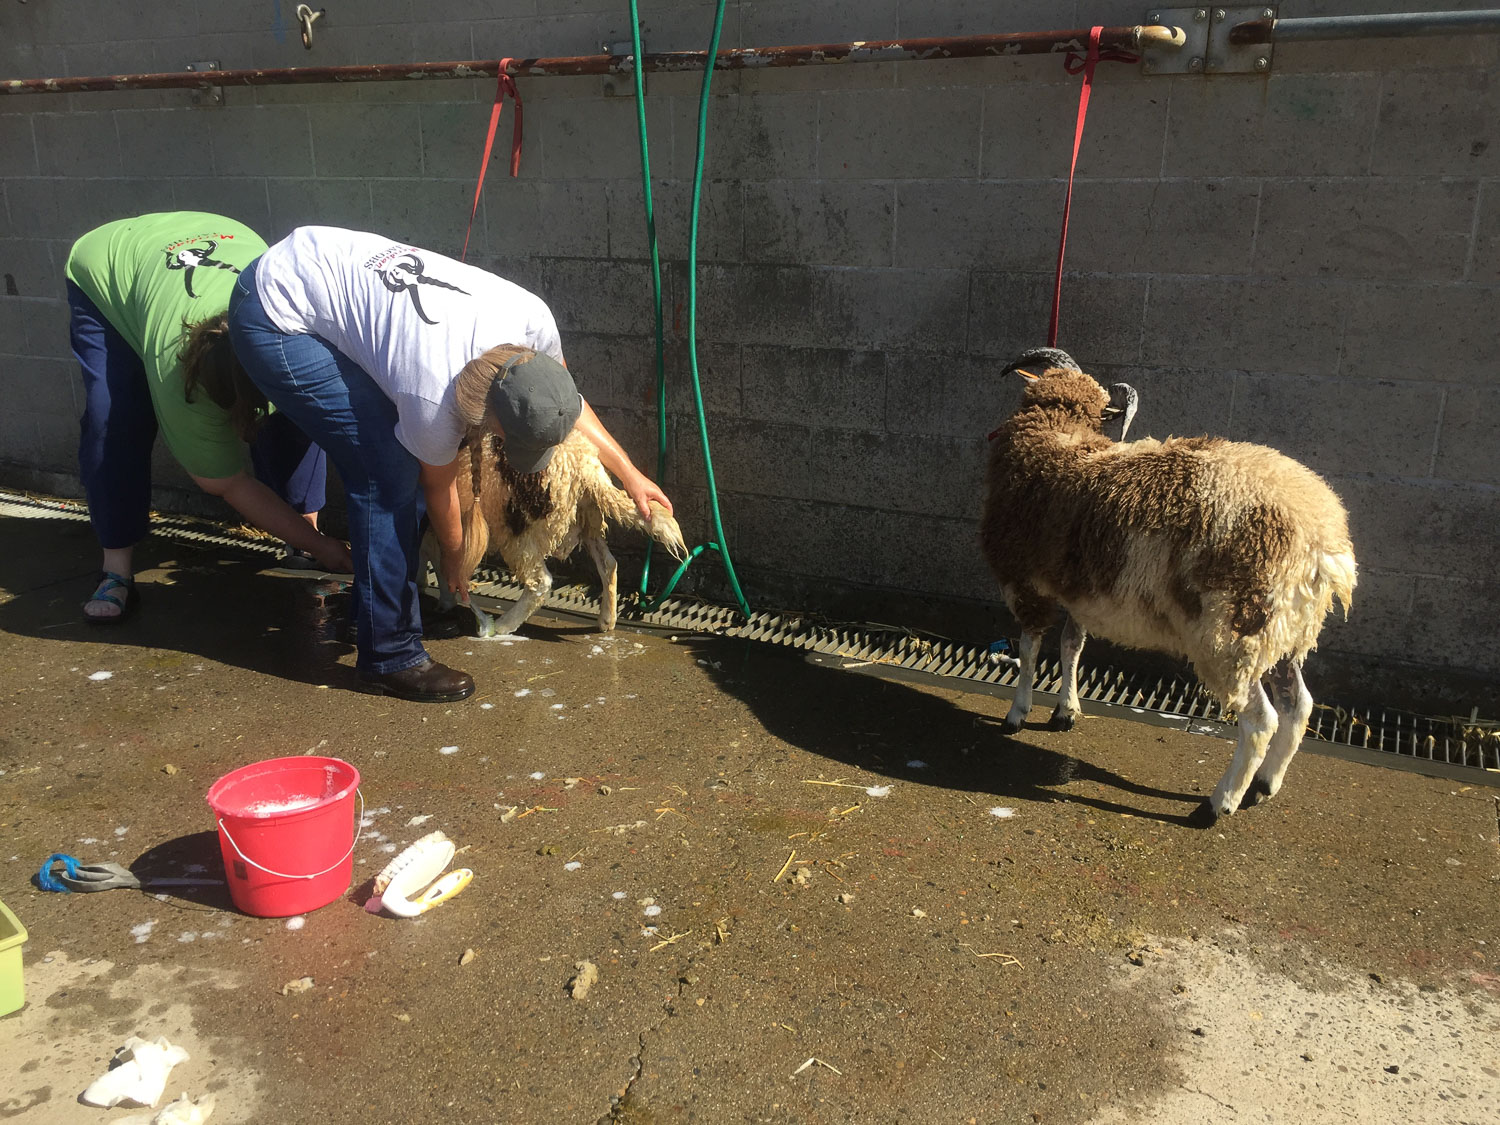 Washing sheep before the show at California State Fair.